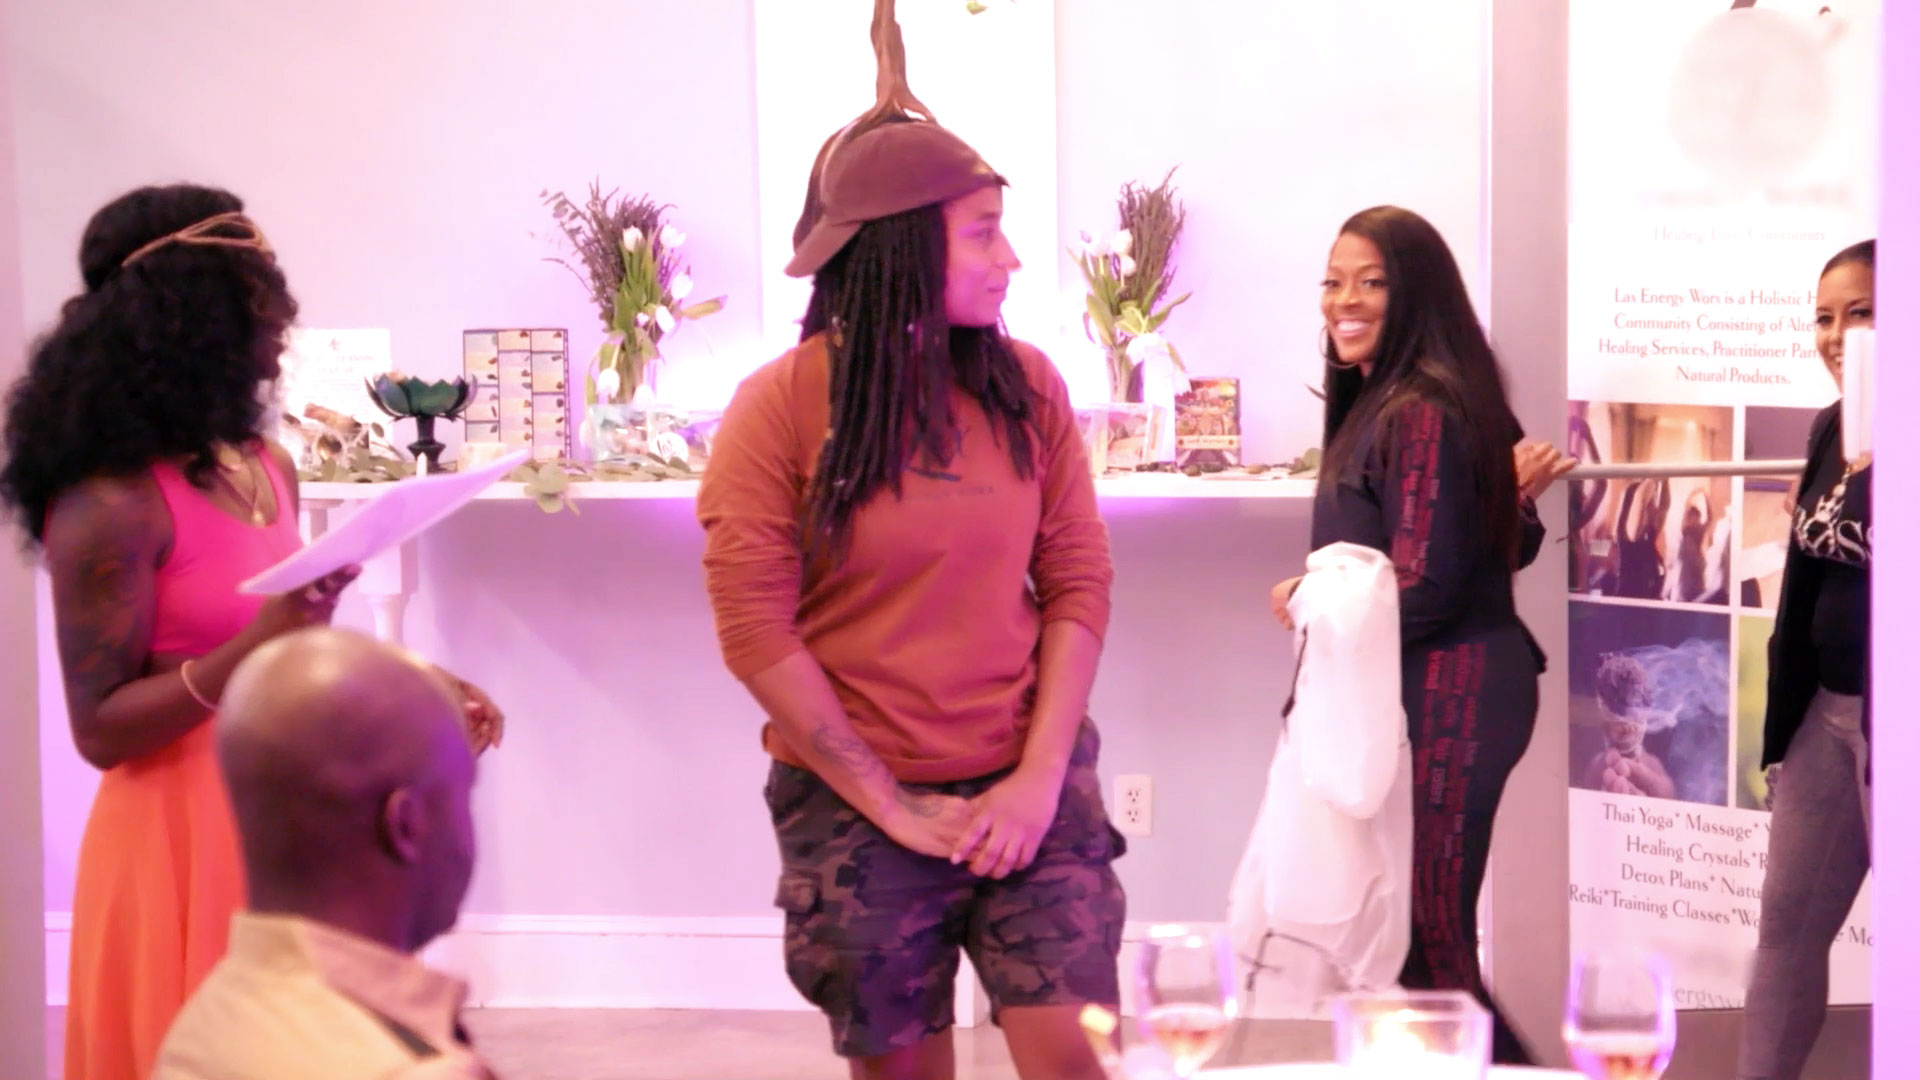 Toya Bush-Harris Arrives Late to Dr. Contessa Metcalfe's Crystal Healing Party